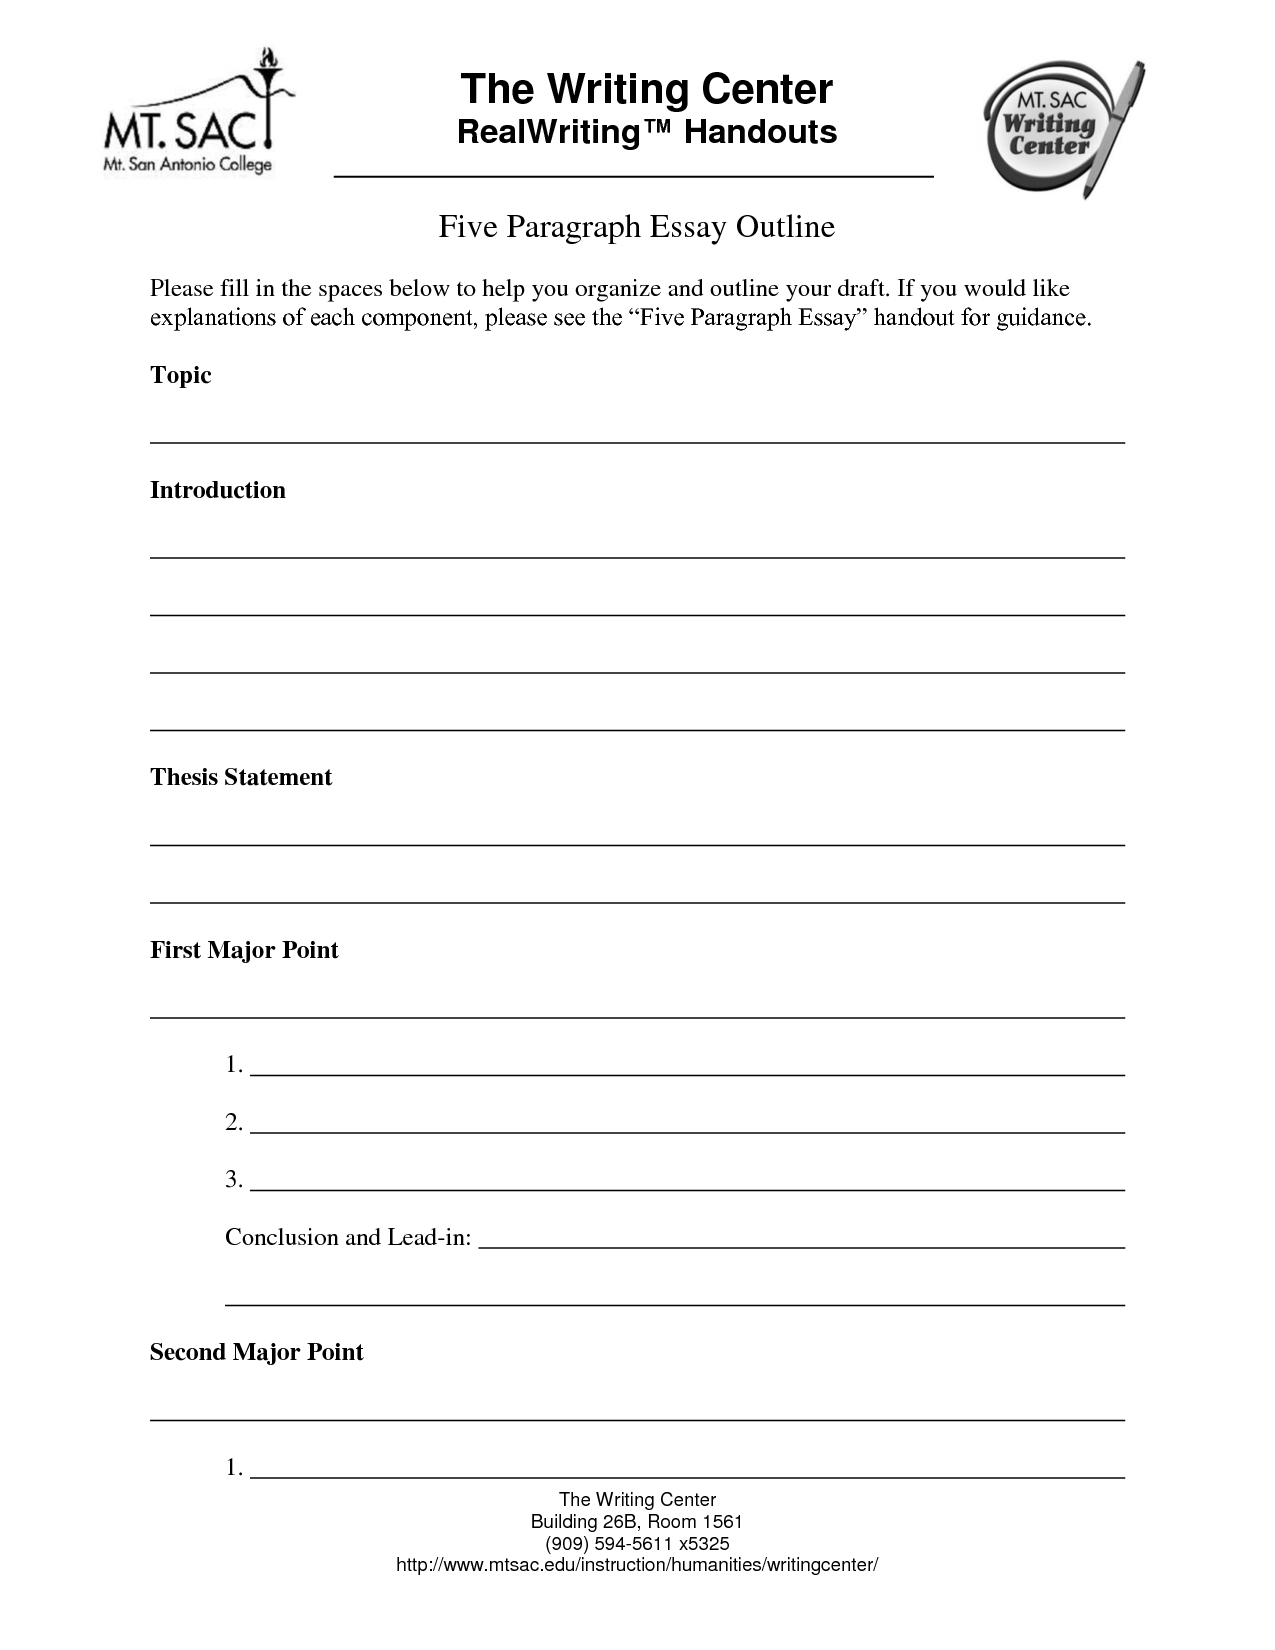 017 Five Paragraph Essay Outline Template 295989 Impressive 5 Printable Persuasive Full